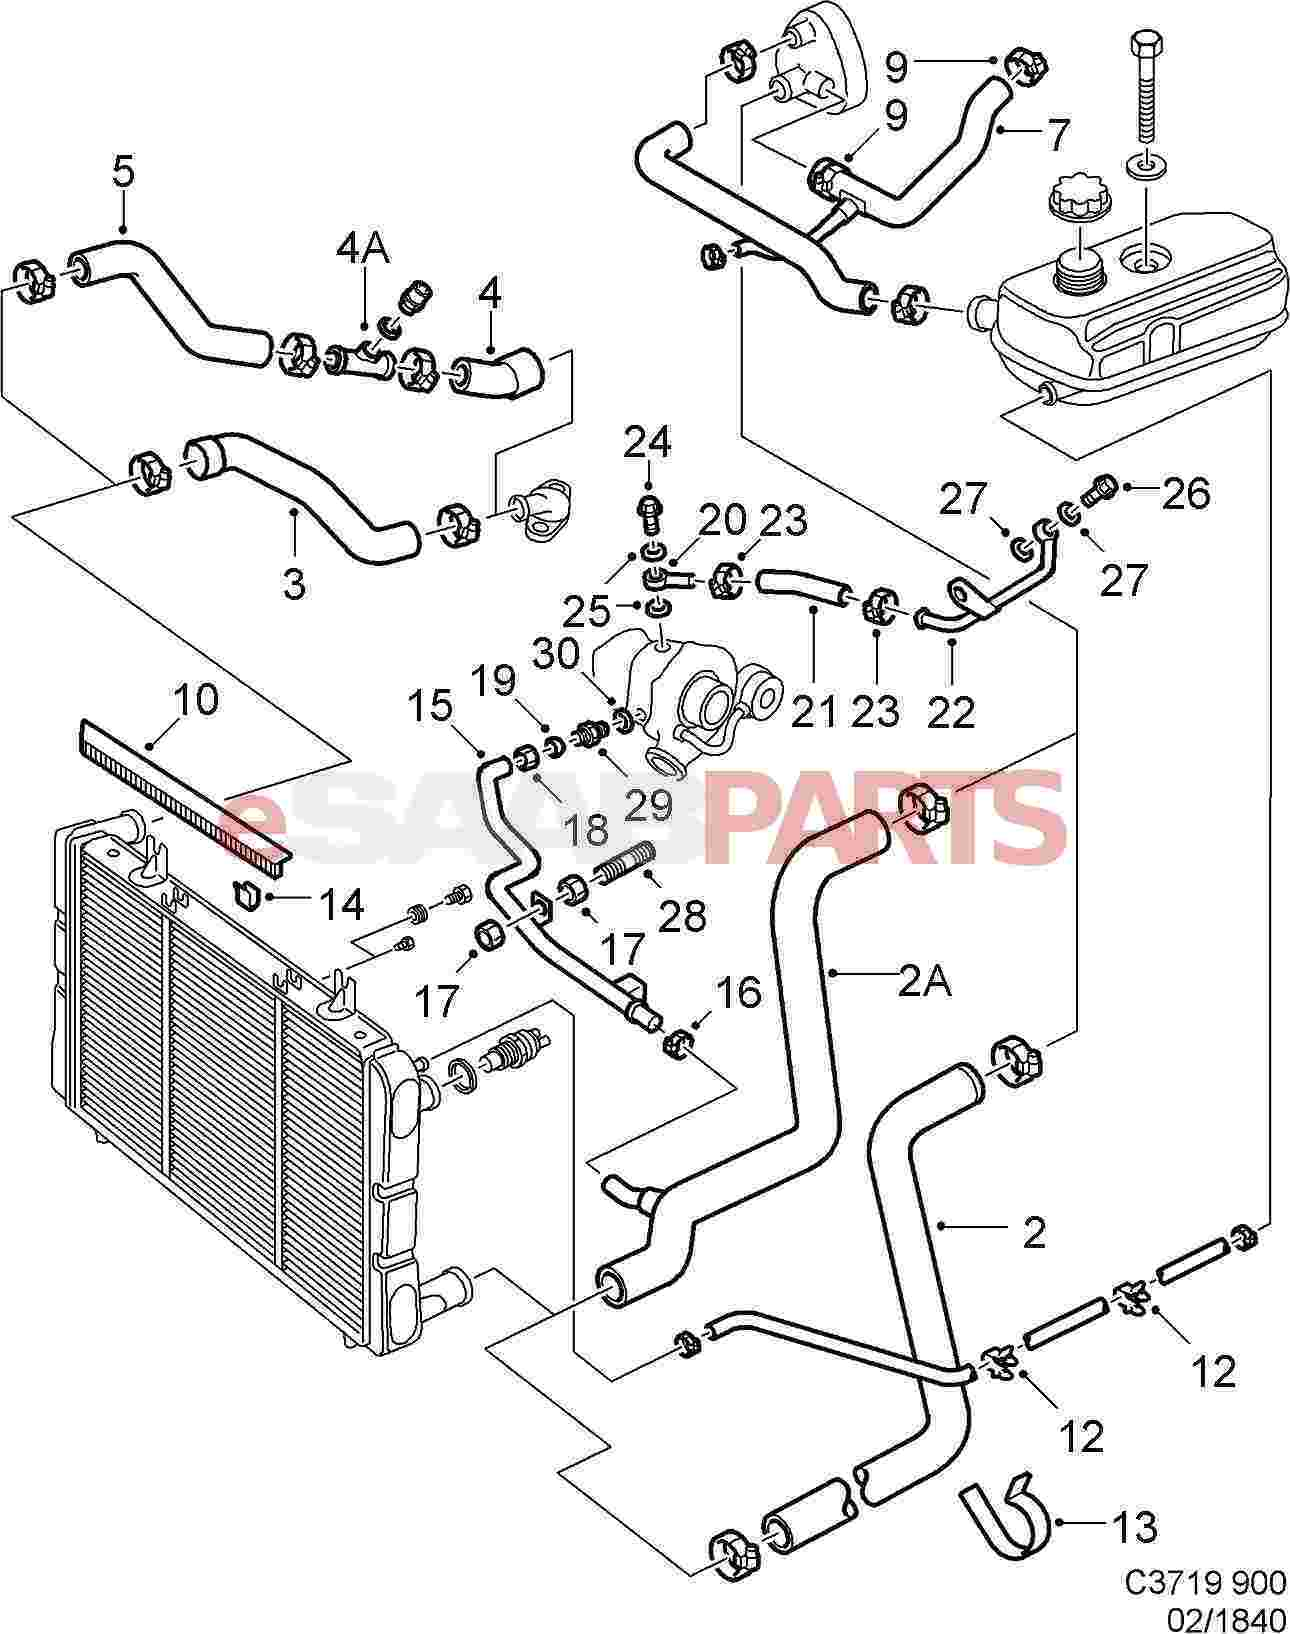 Nr Cooling System Diagram On Honda Accord